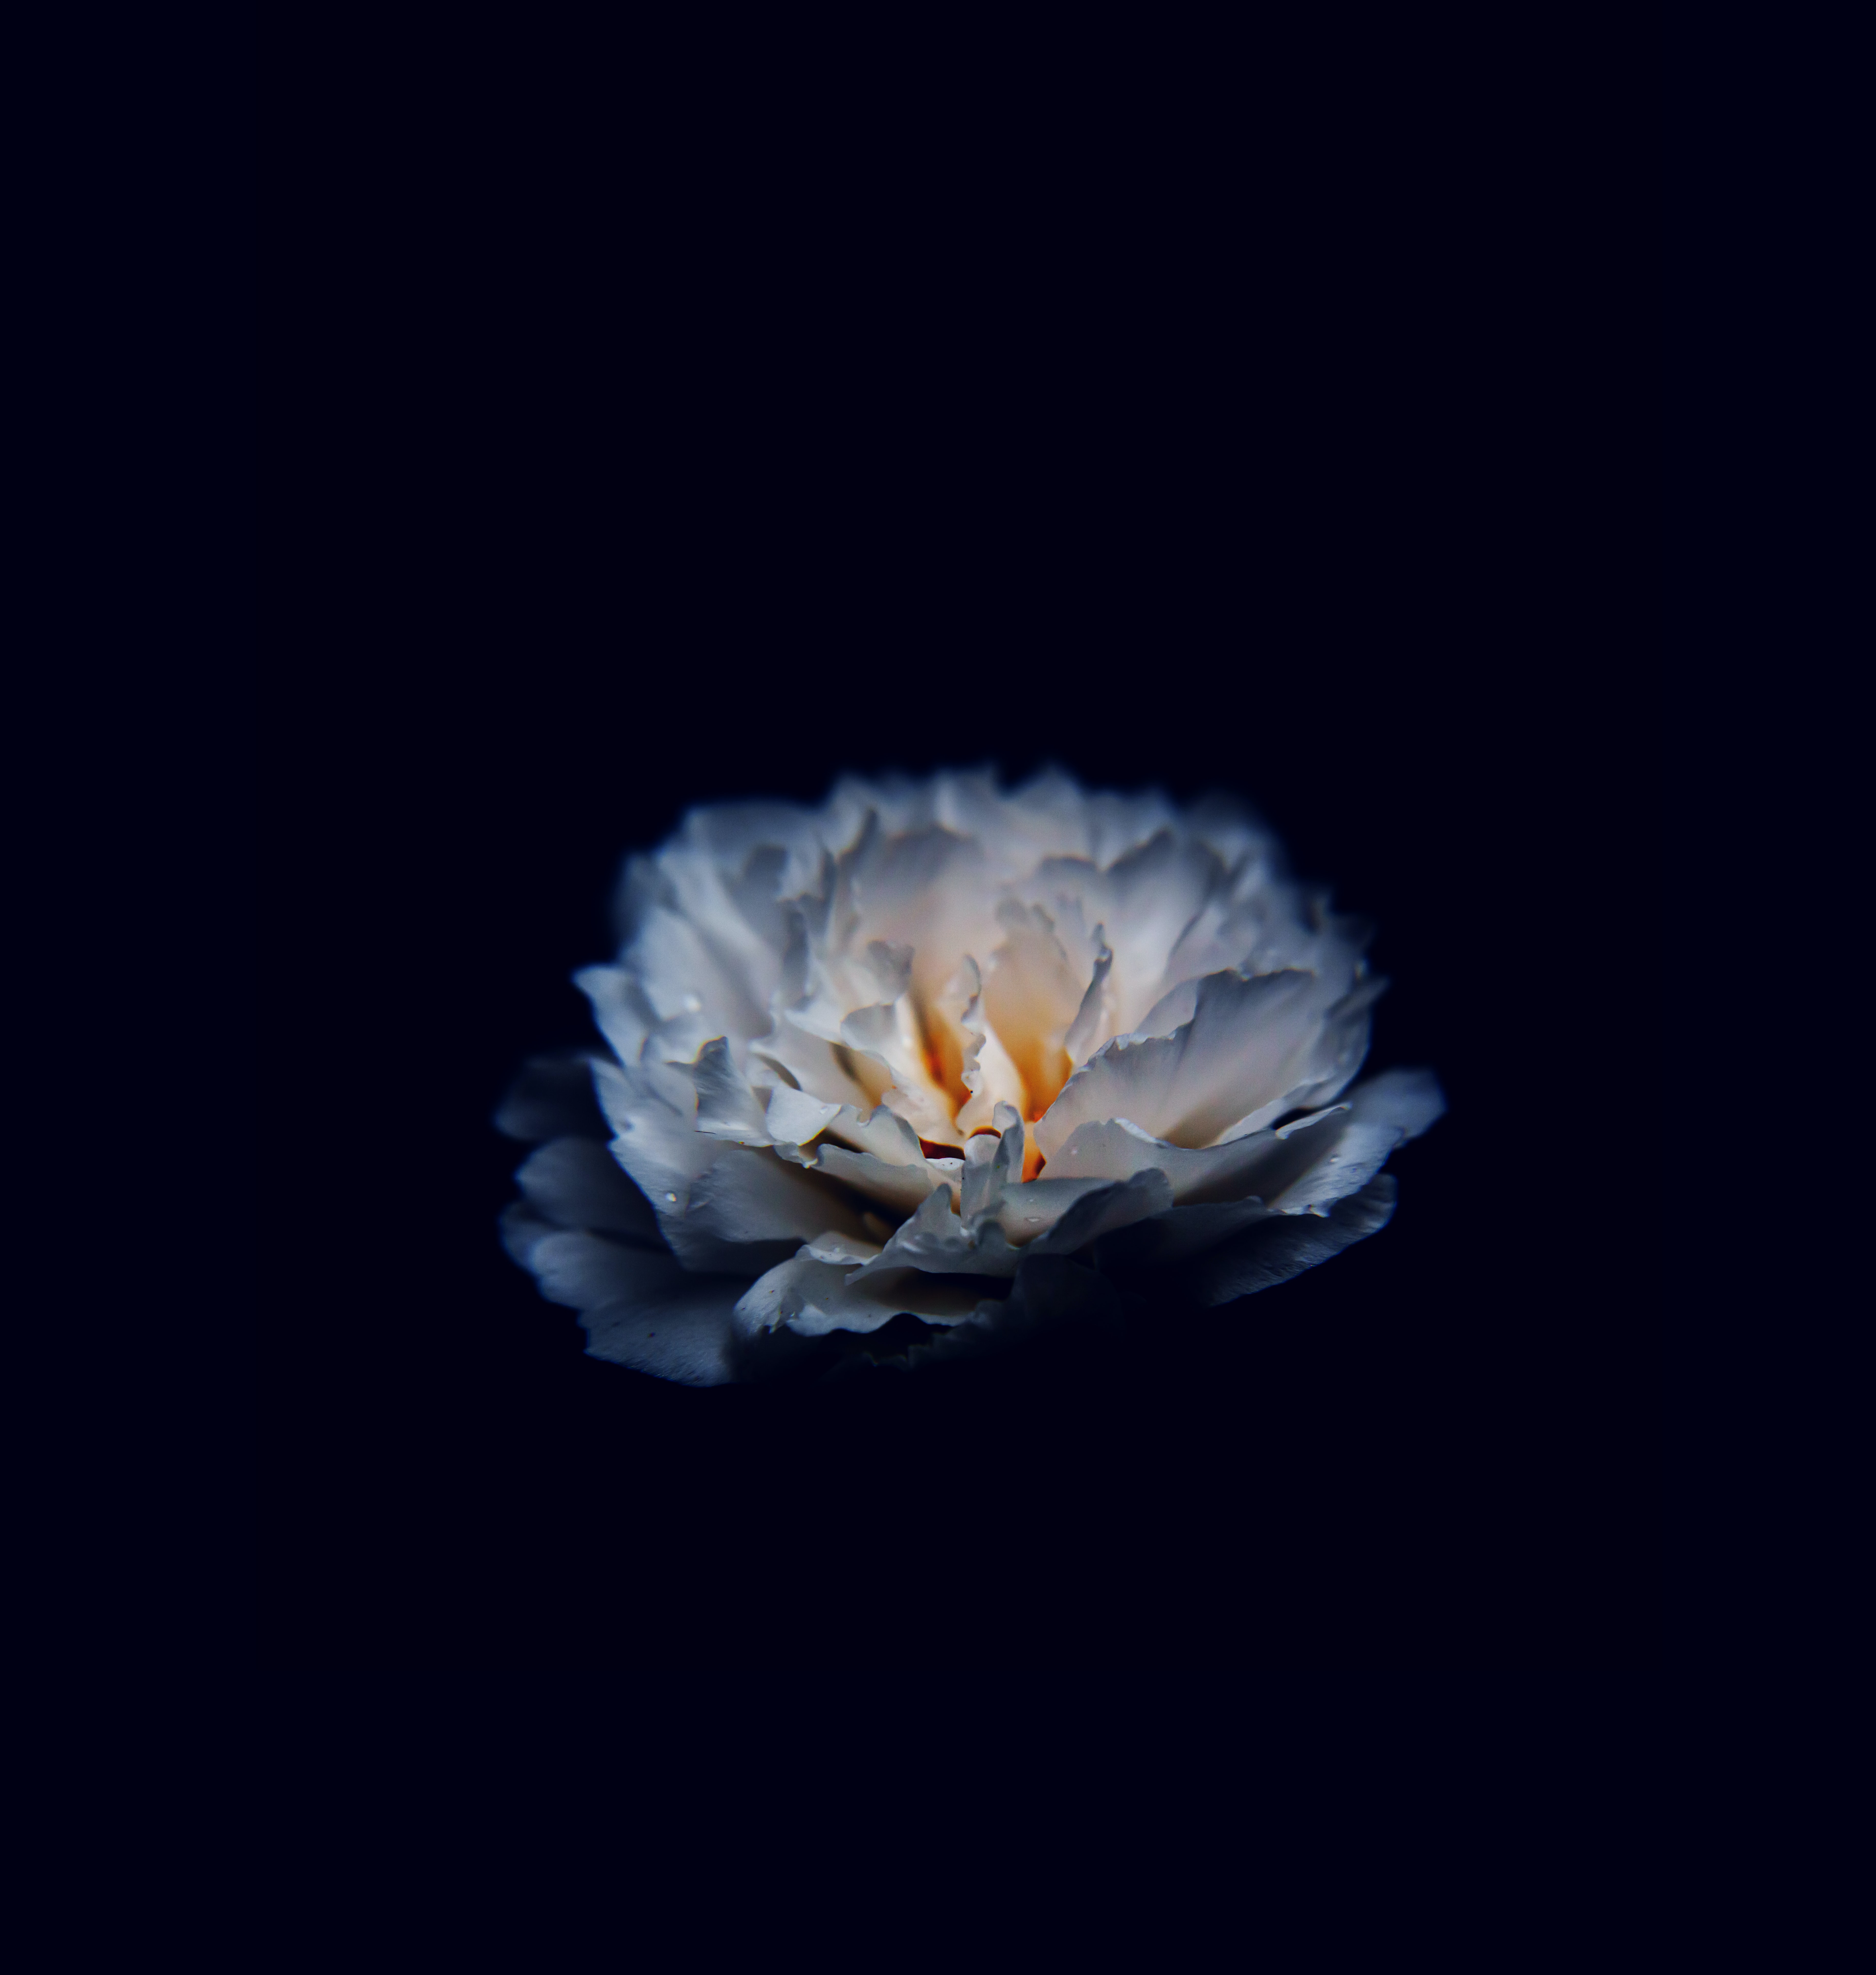 white carnation flower in black background